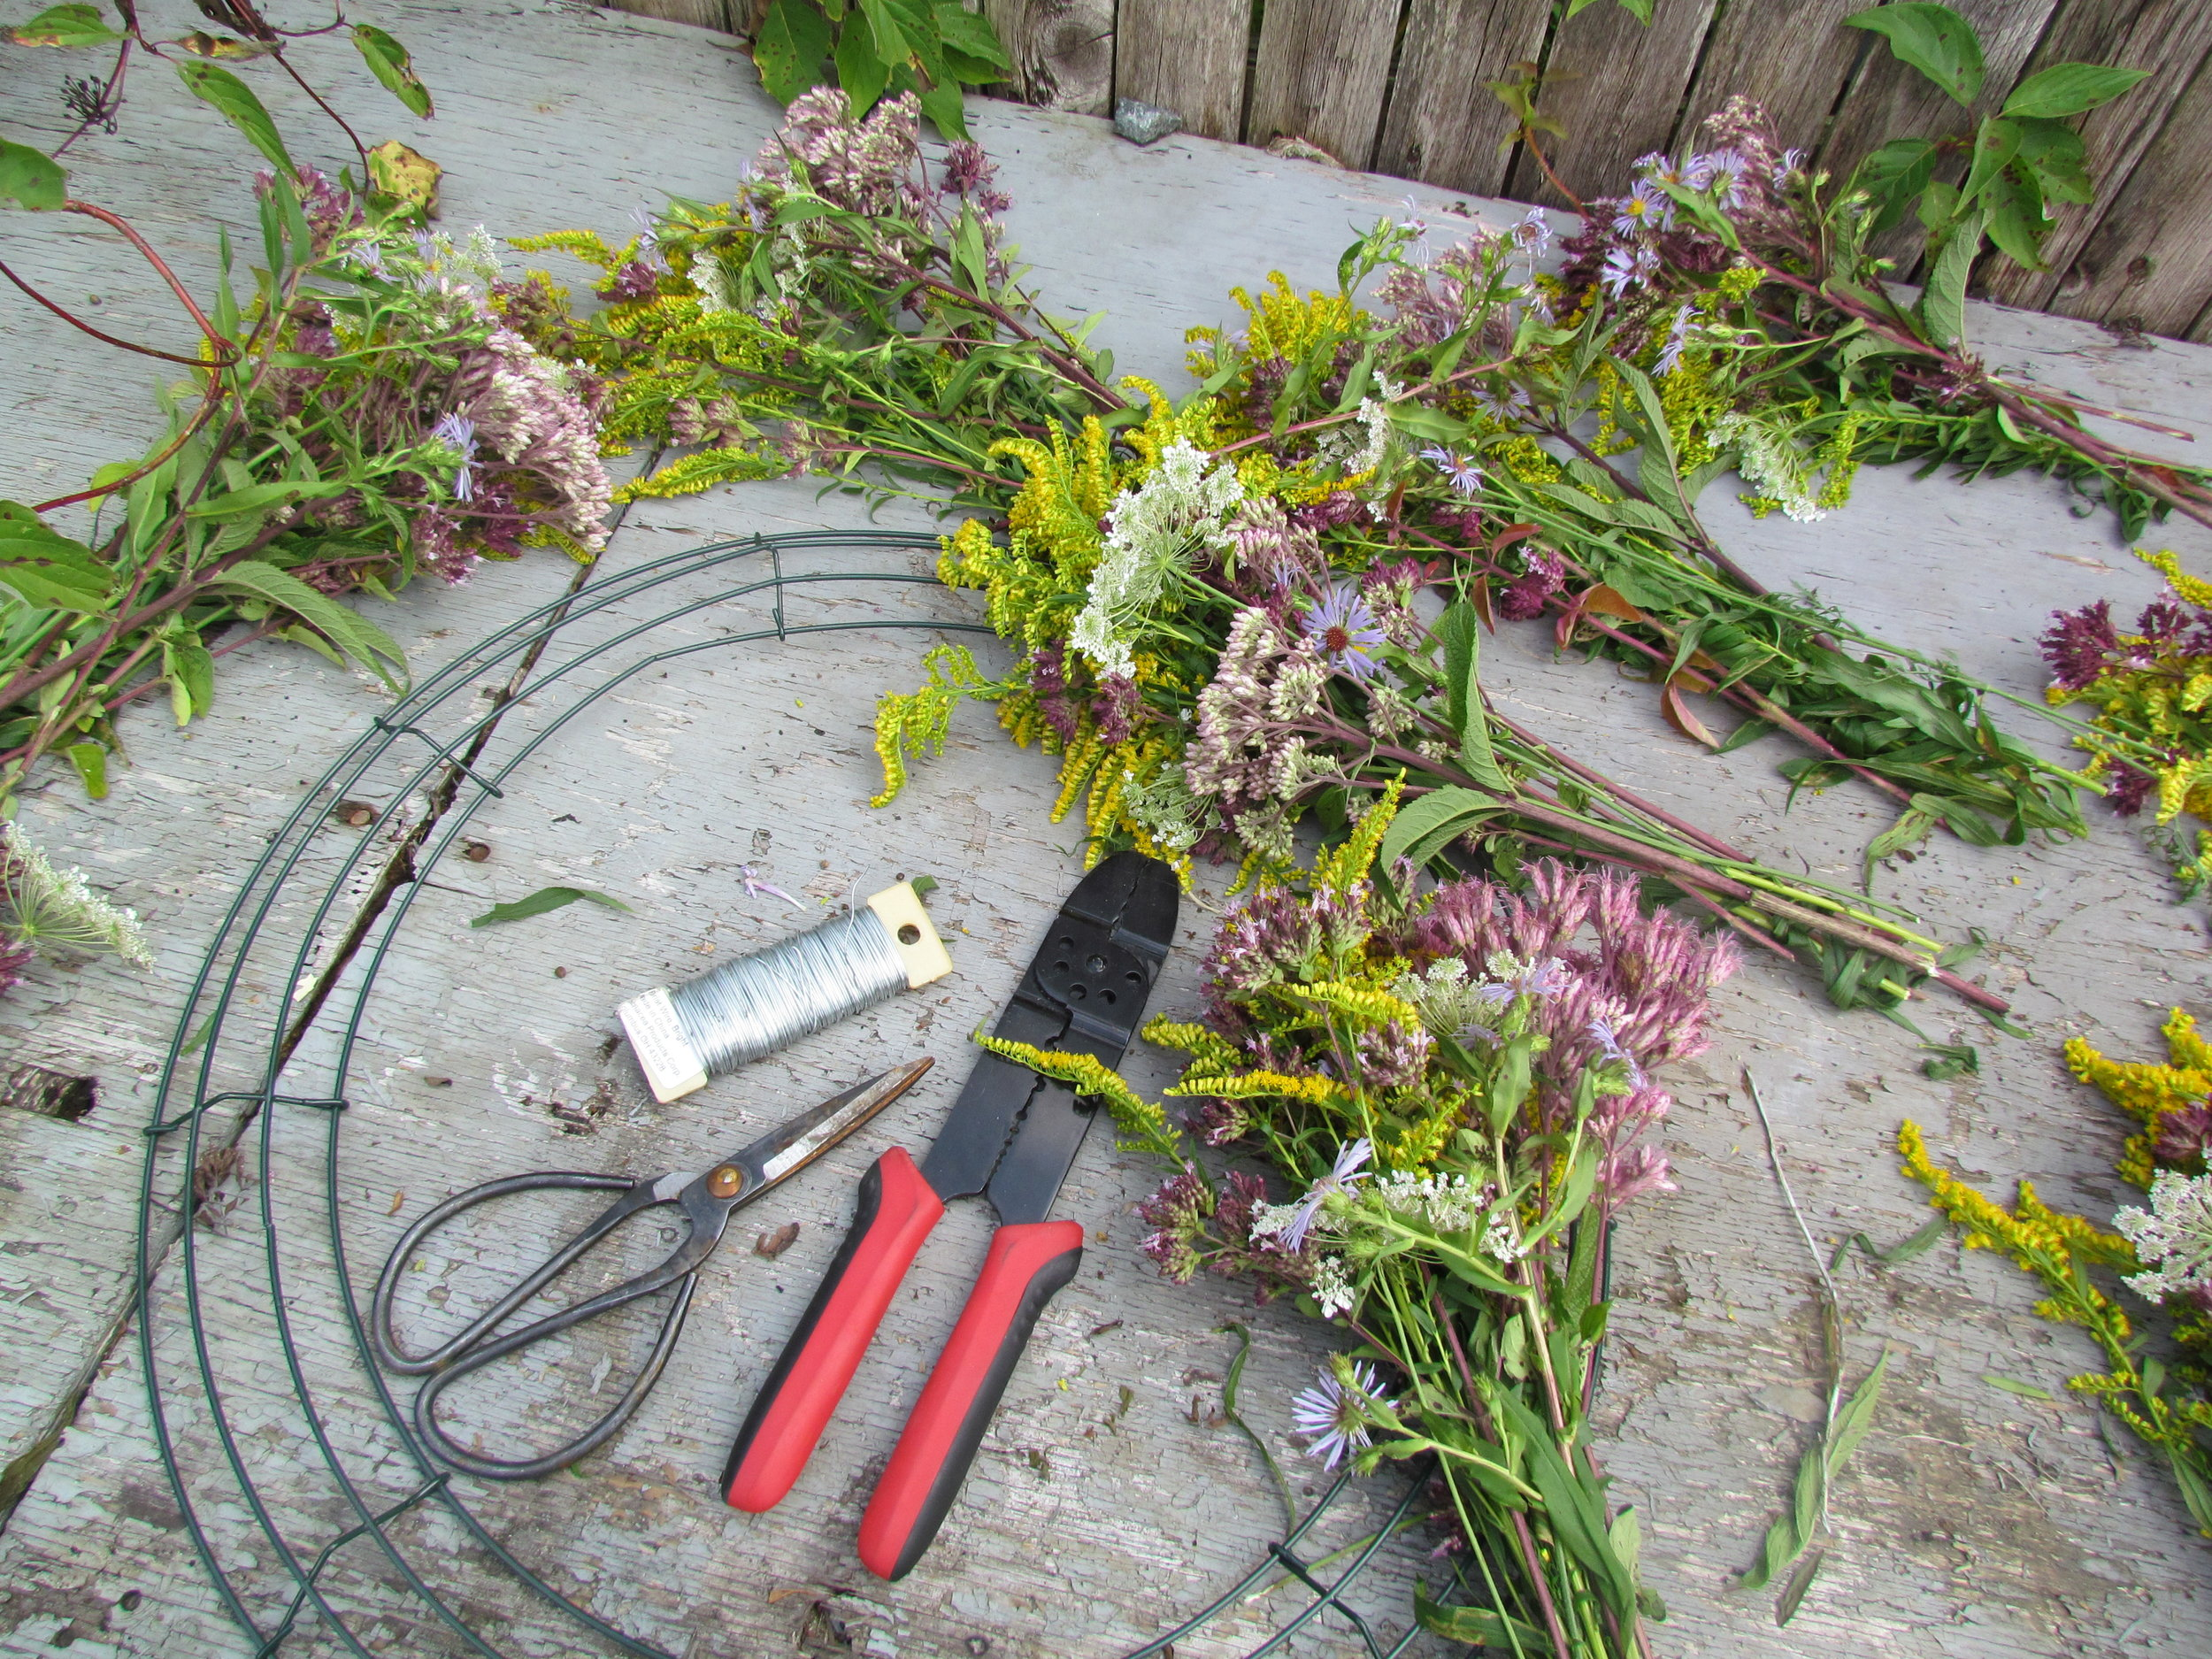 How To Make a Wildflower Wreath